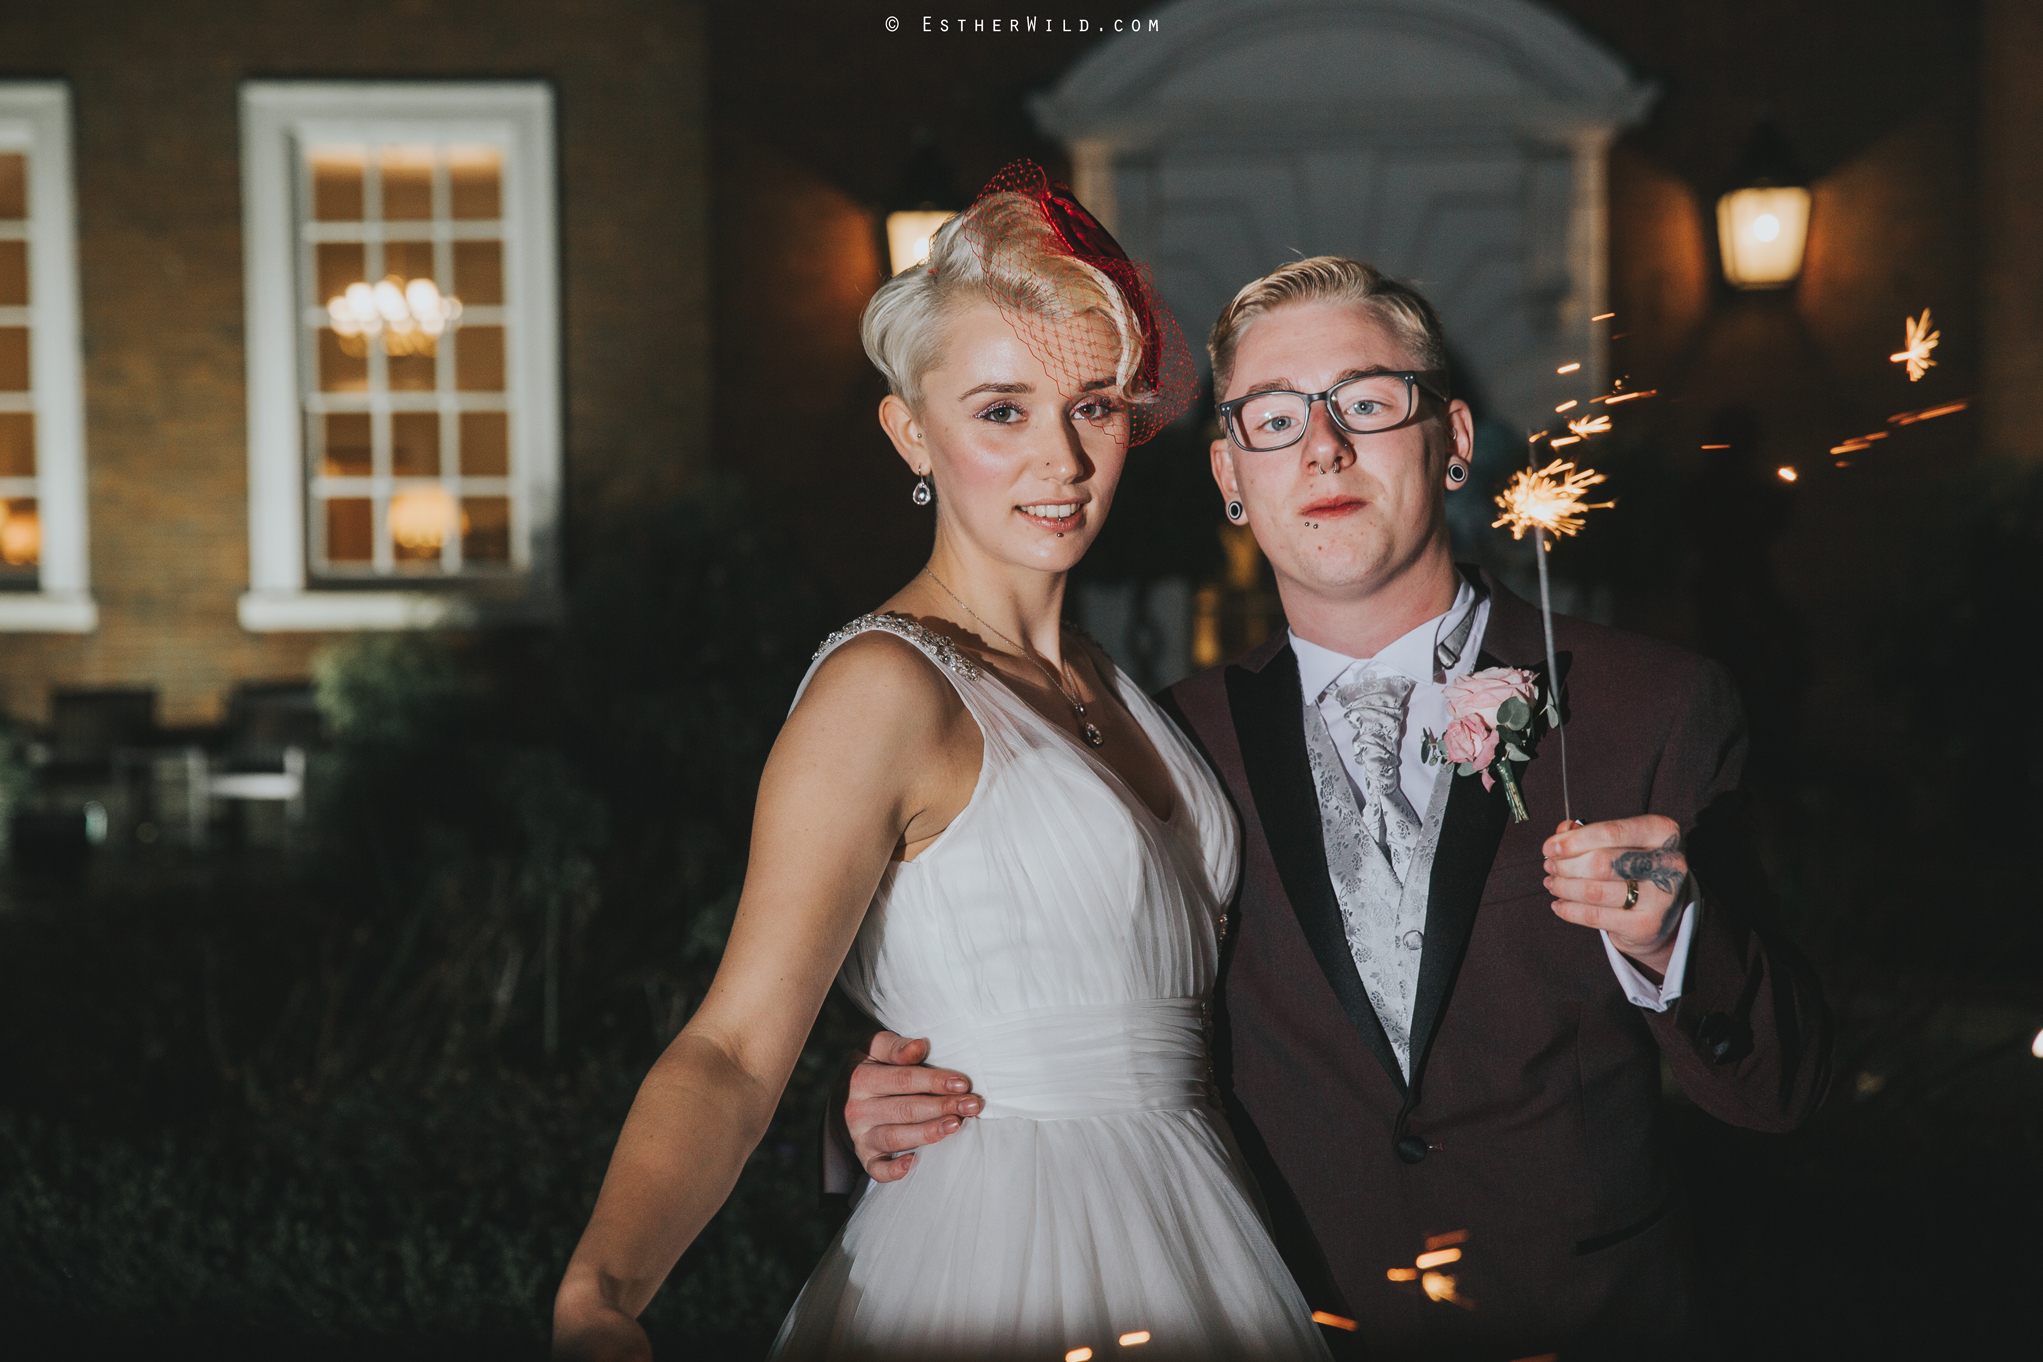 Norwich_Assembly_House_Wedding_Esther_Wild_Photographer_IMG_4813.jpg